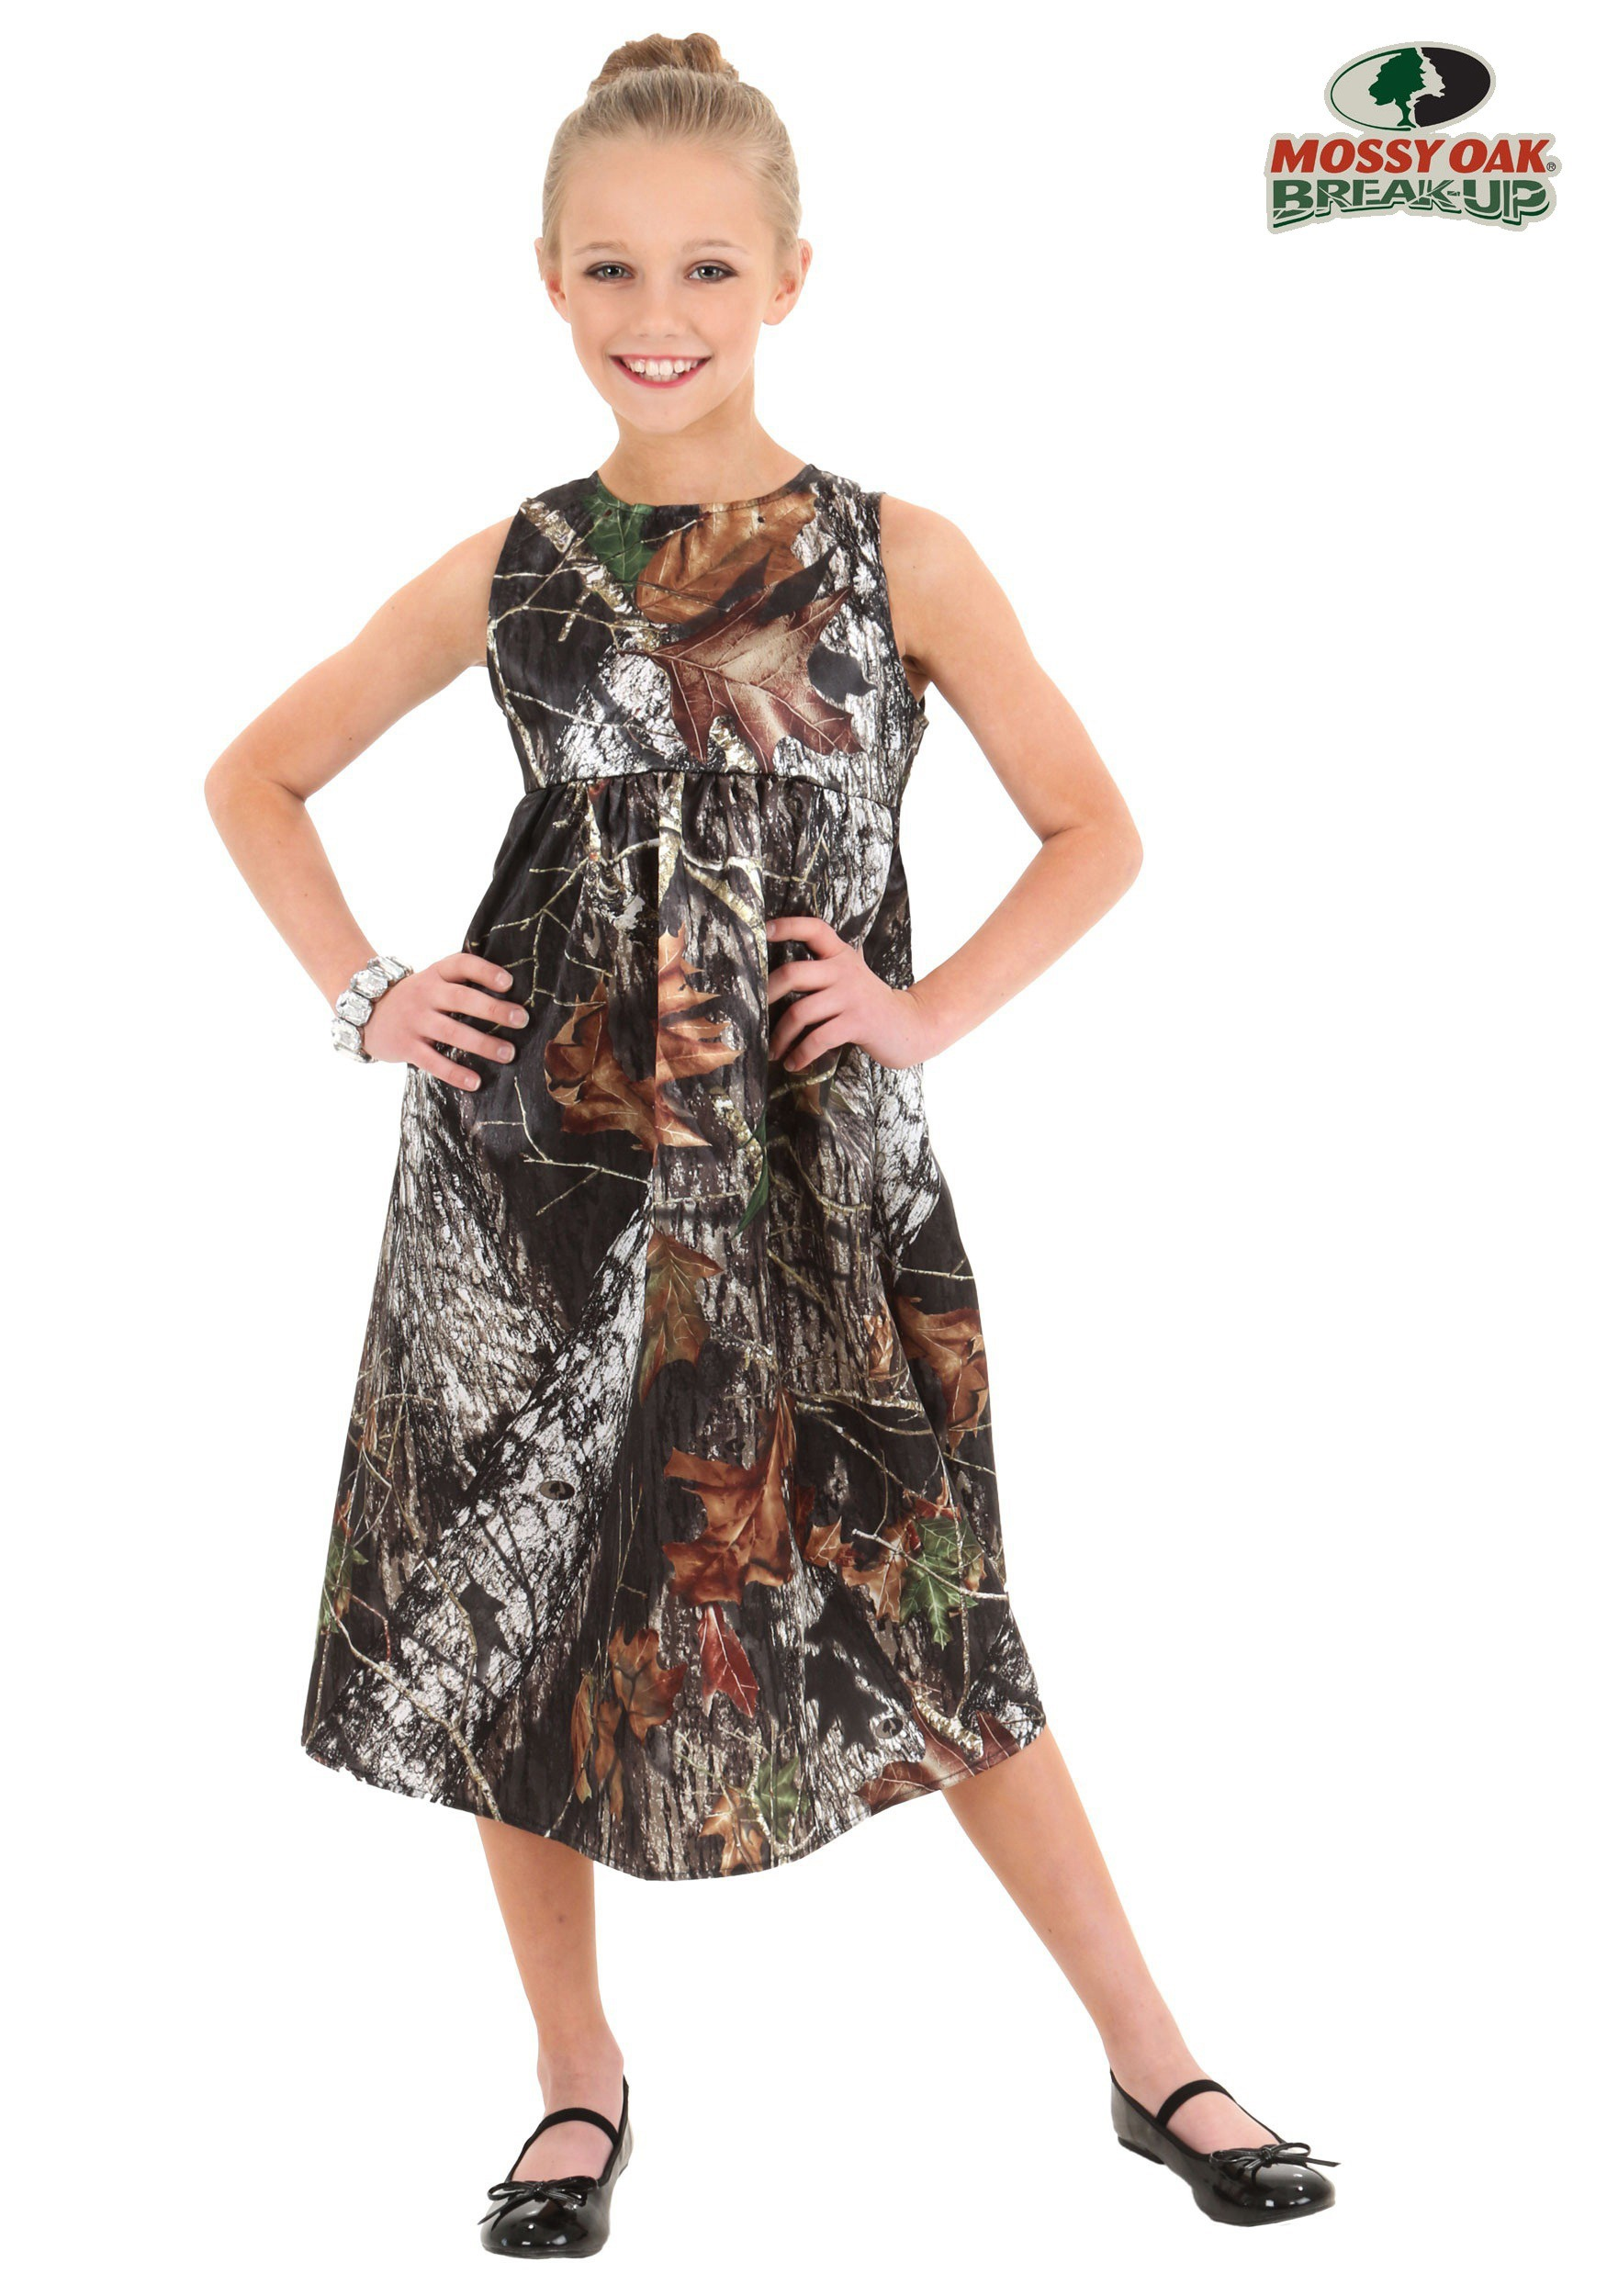 e9008ad811a Child Mossy Oak Camo Flower Girl Dress Costume